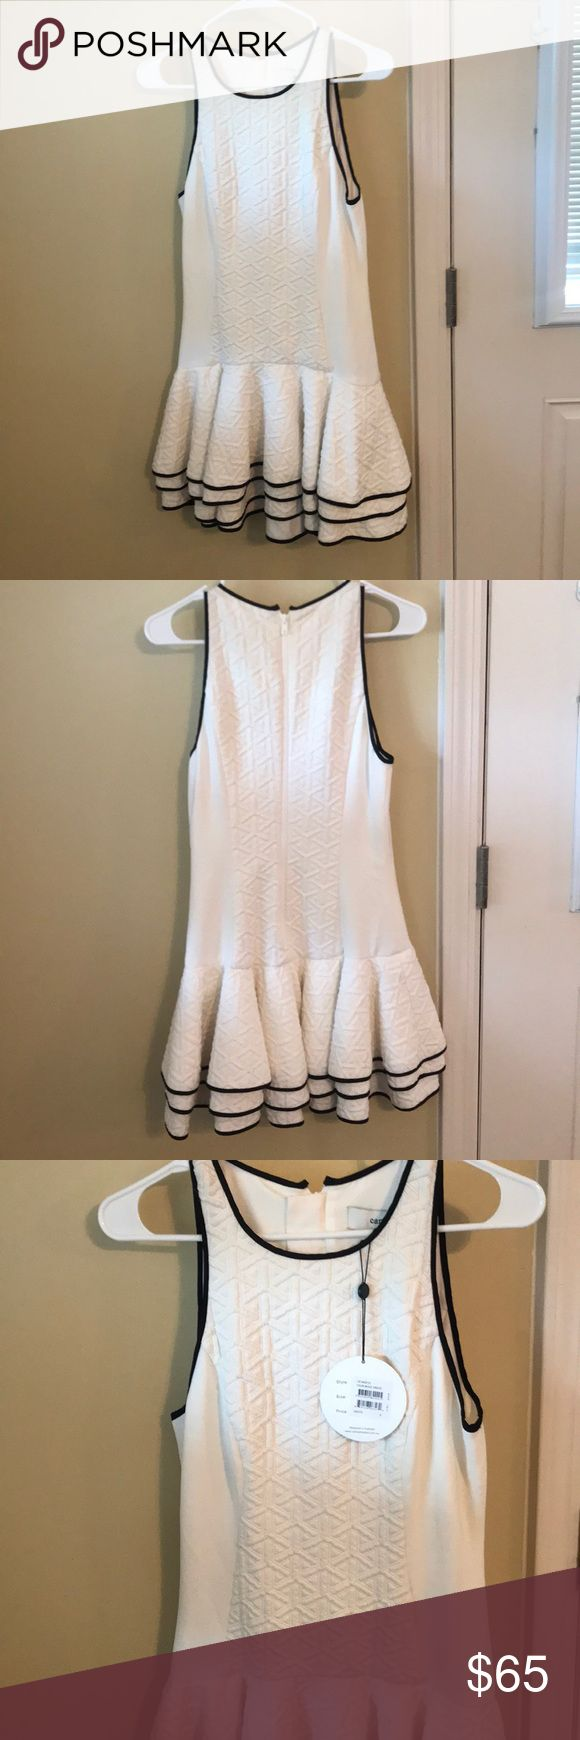 White Cameo Dress White Cameo Dress. Never worn with tags still on. The fit is super cute and slimming! Cameo the Label is a brand designed in Australia and can find on Nordstrom, Bloomingdales etc. cameo the label Dresses Mini